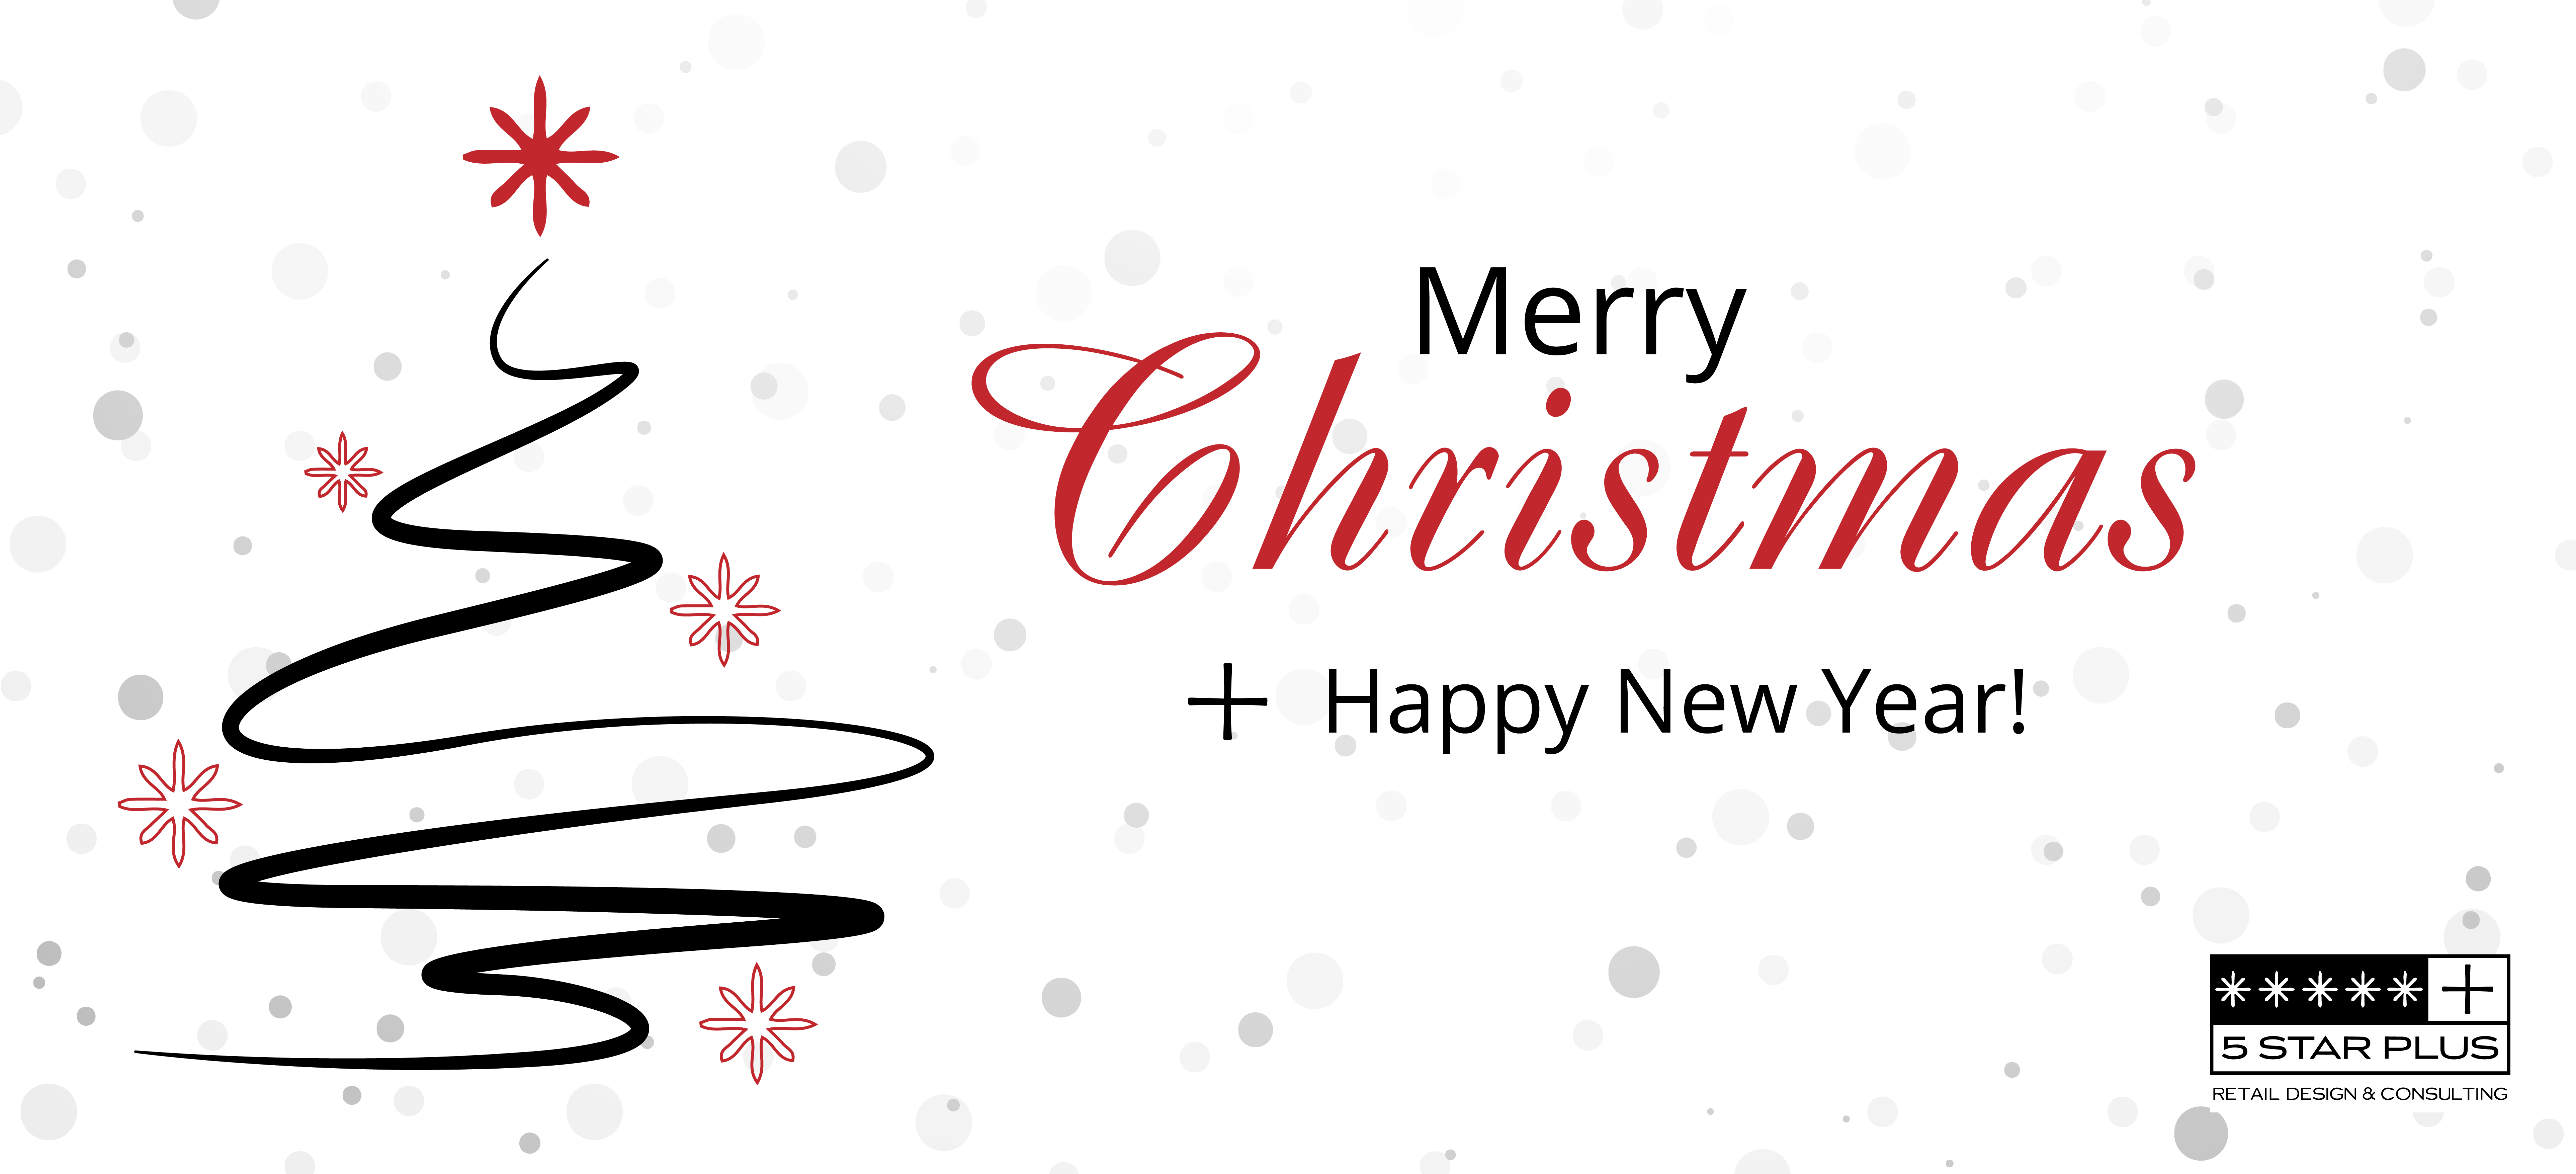 5 Star Plus Retail Design wishes everybody Merry Christmas and a Happy New Year